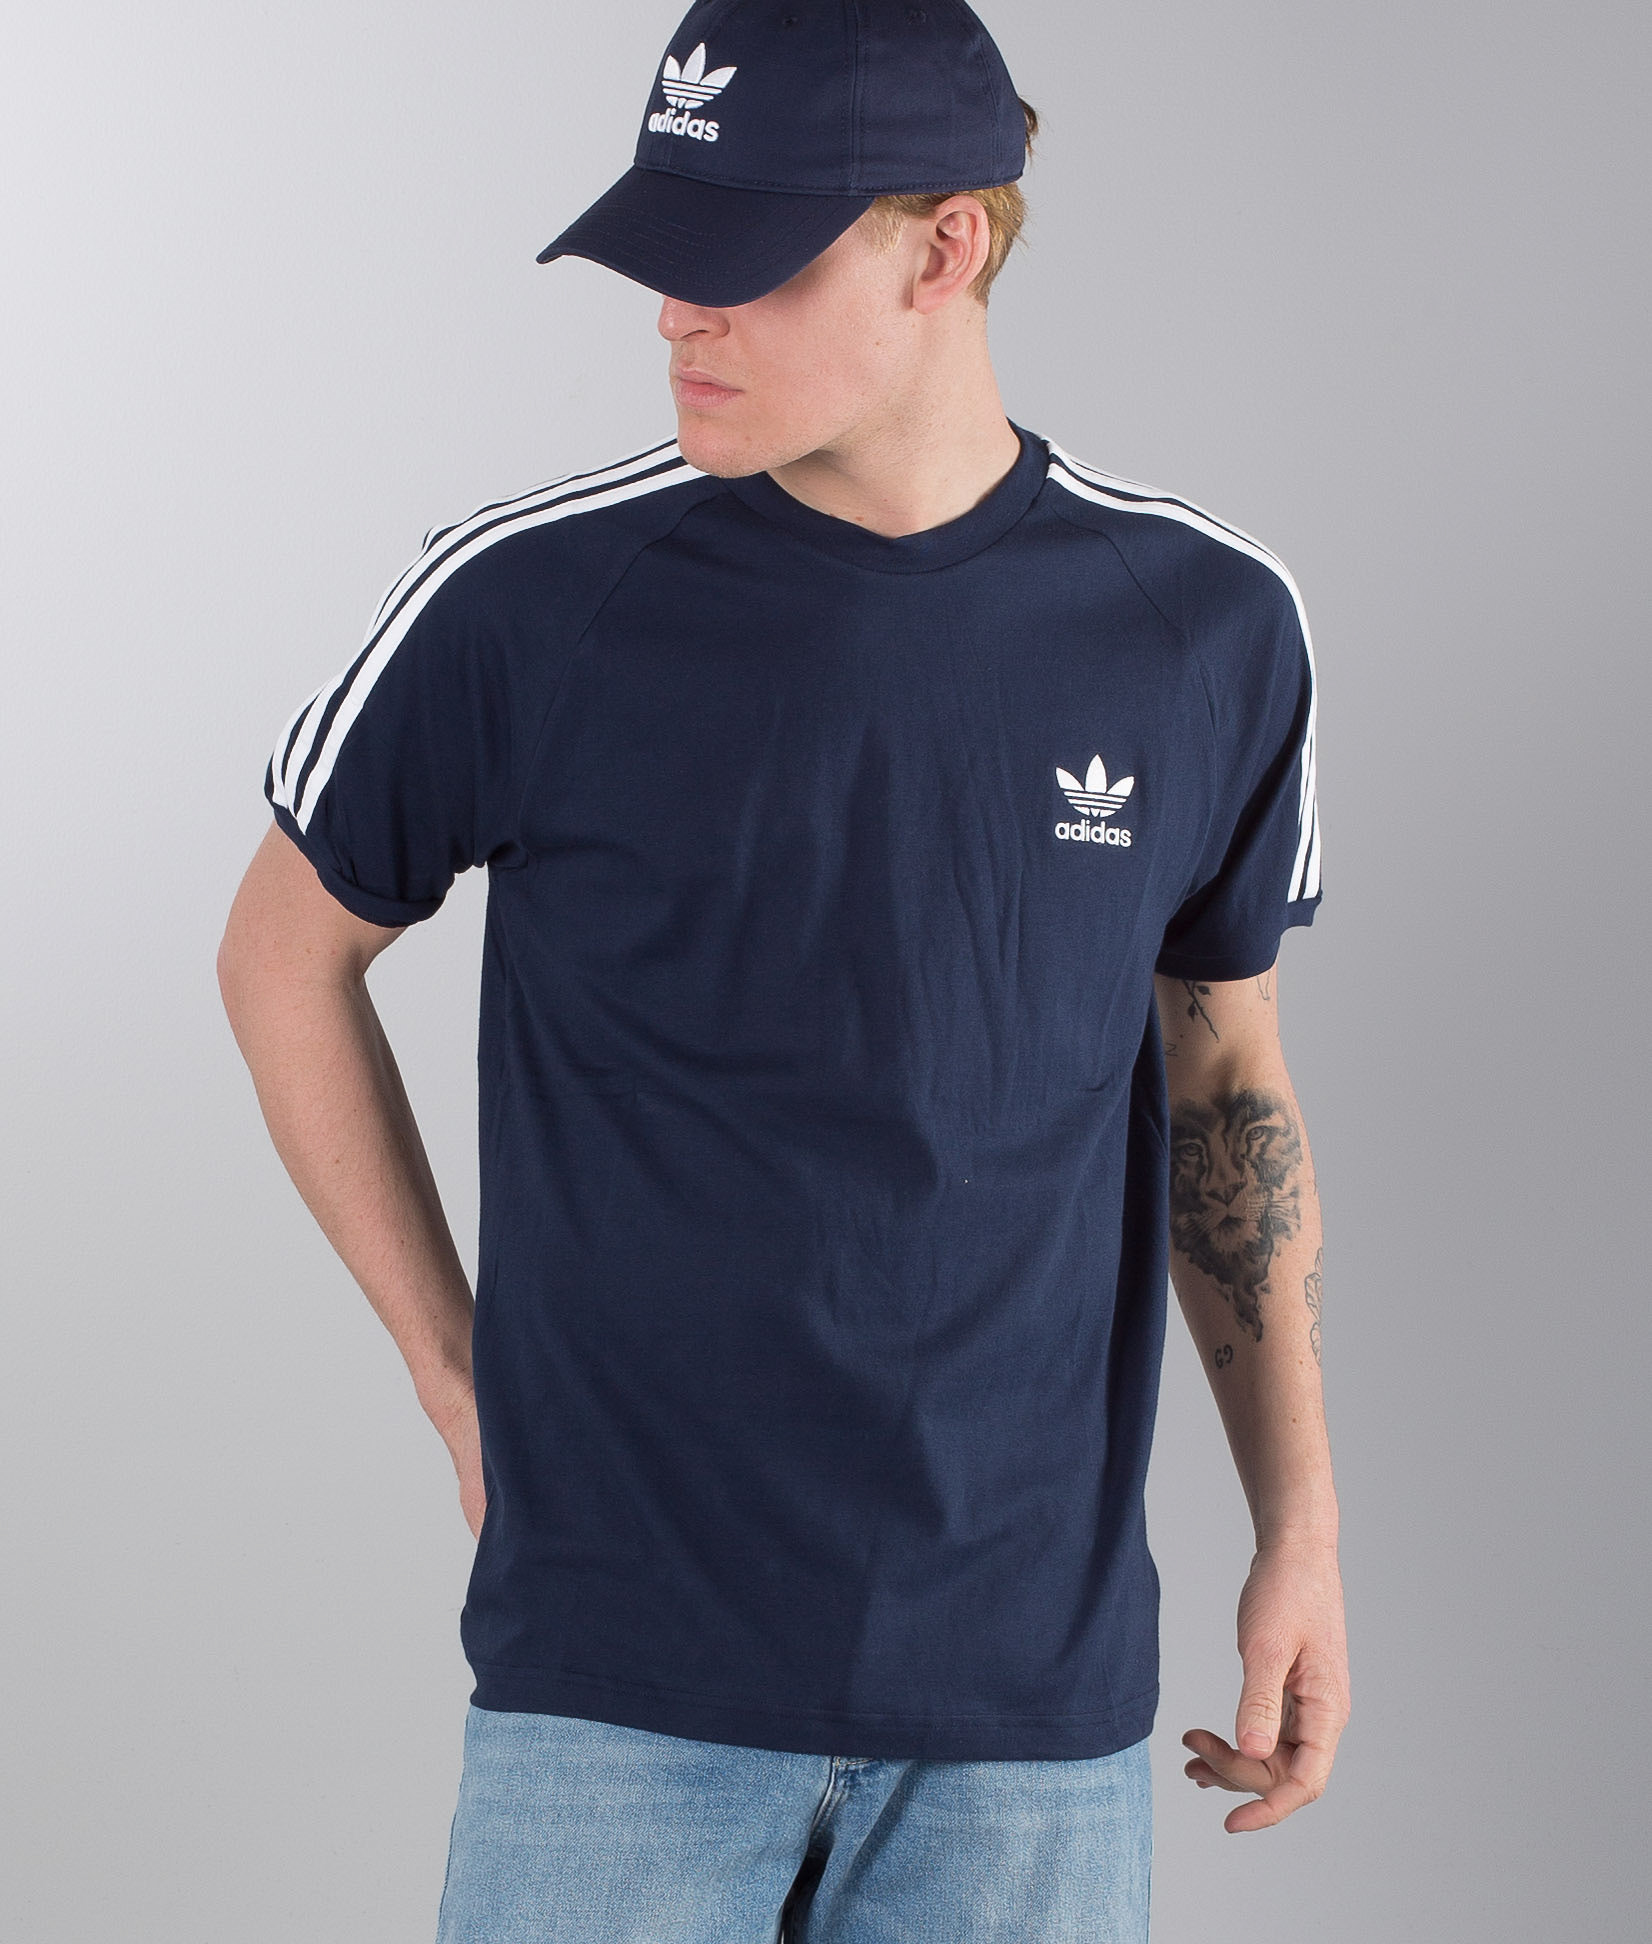 8f2f56f26d7 Adidas Originals 3-Stripes T-shirt Collegiate Navy - Ridestore.com